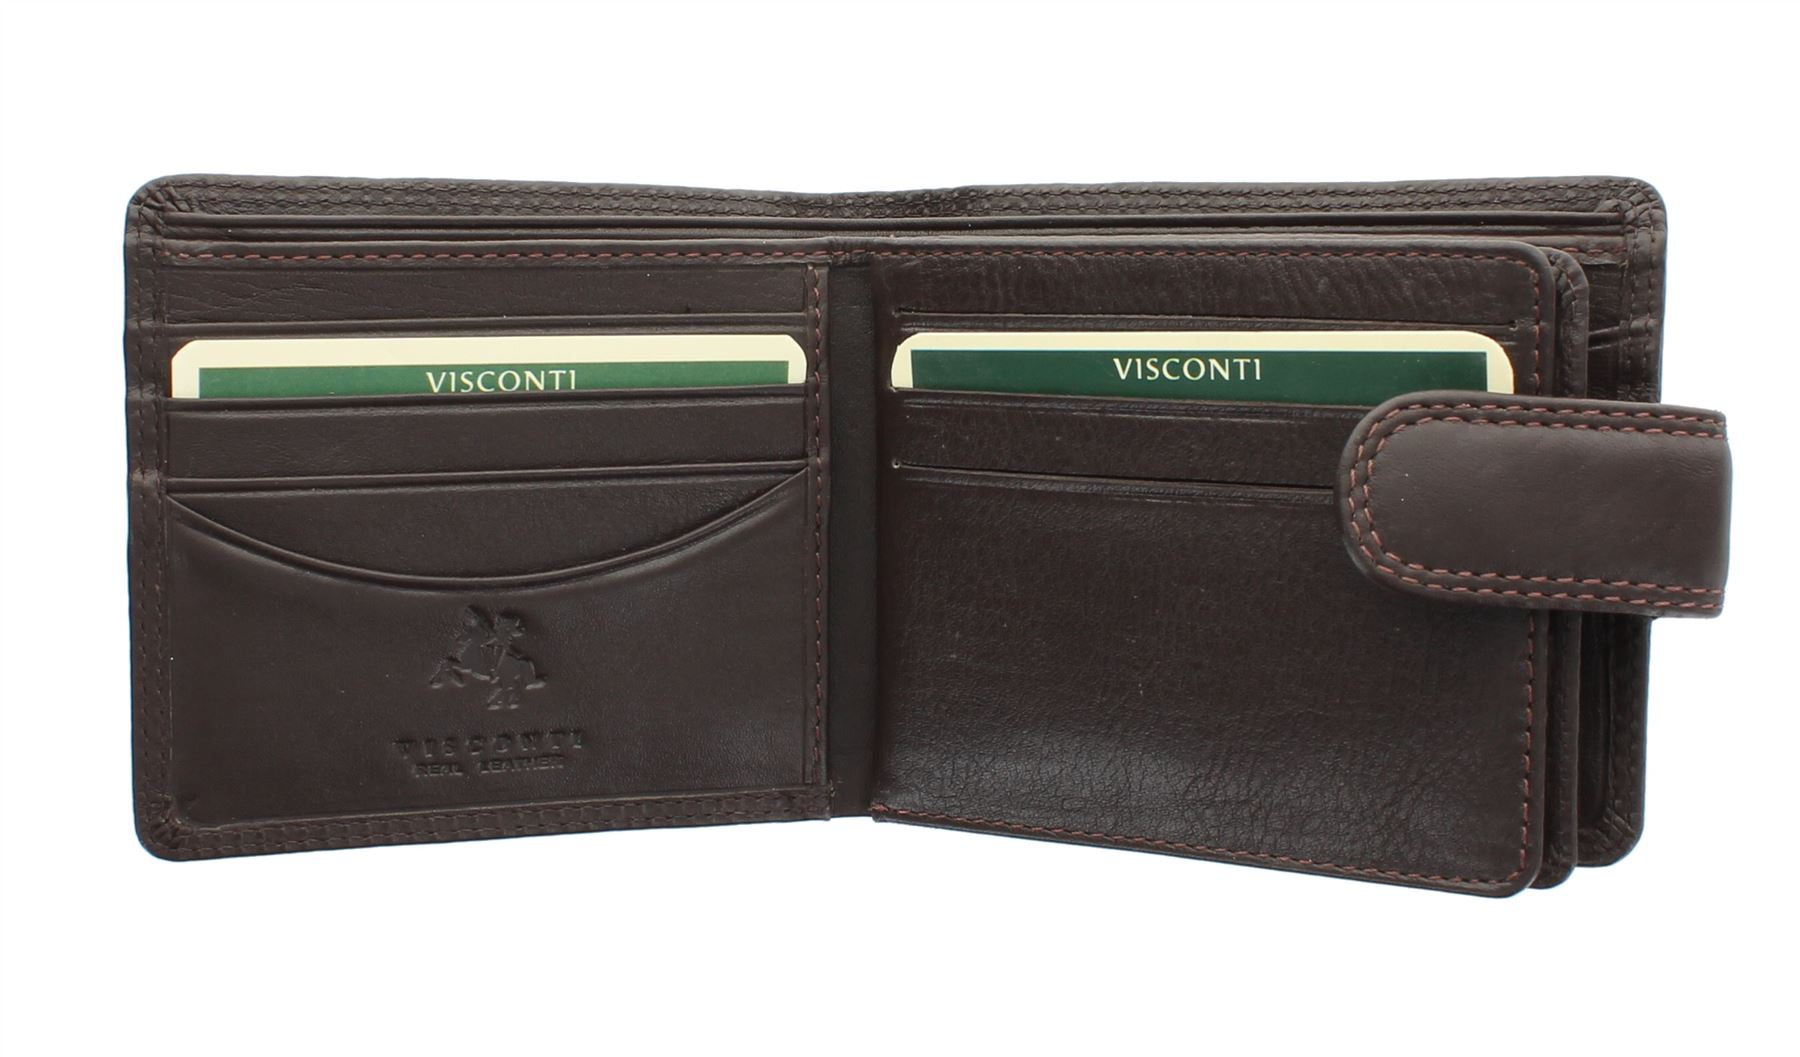 Visconti heritage collection Strand portefeuille cuir avec fermeture onglet HT13